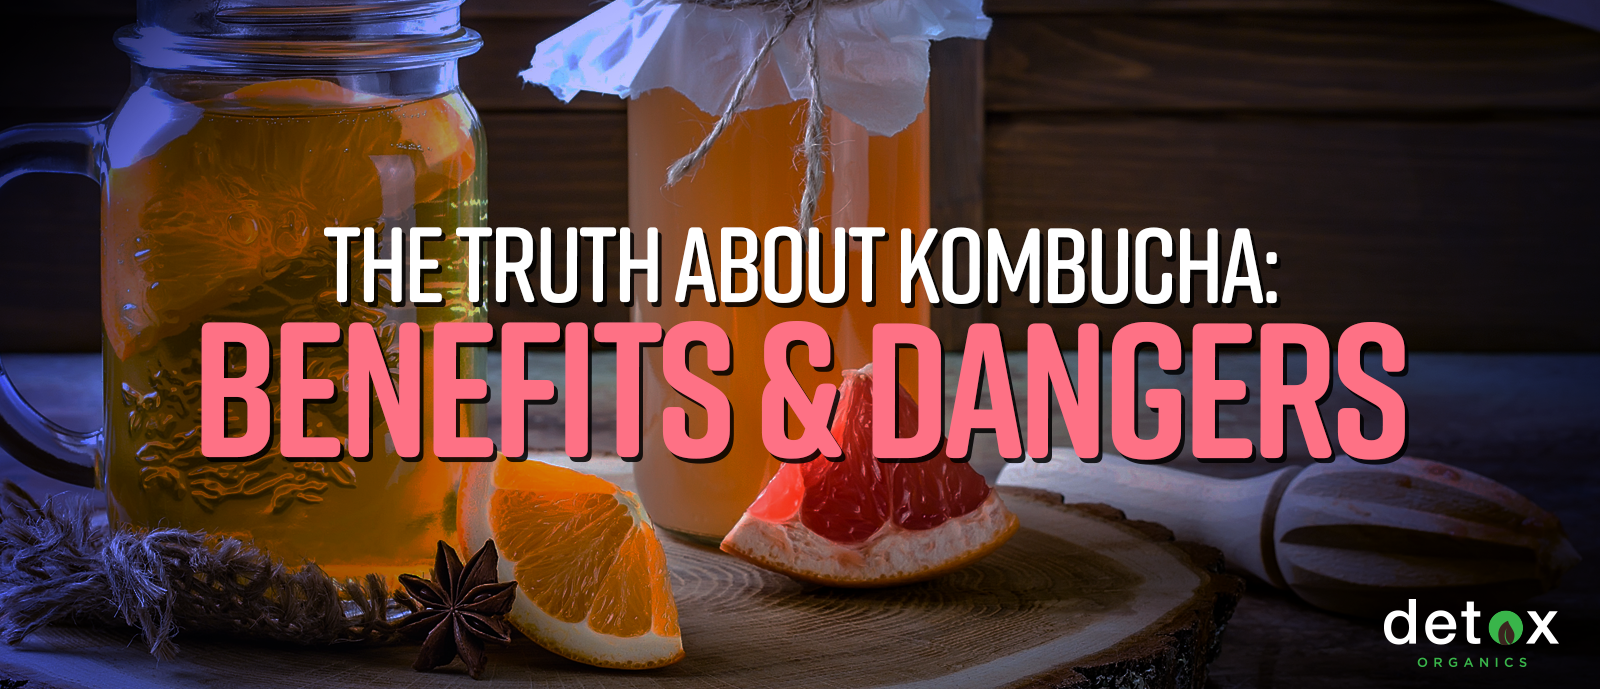 The Truth About Kombucha: Benefits and Dangers